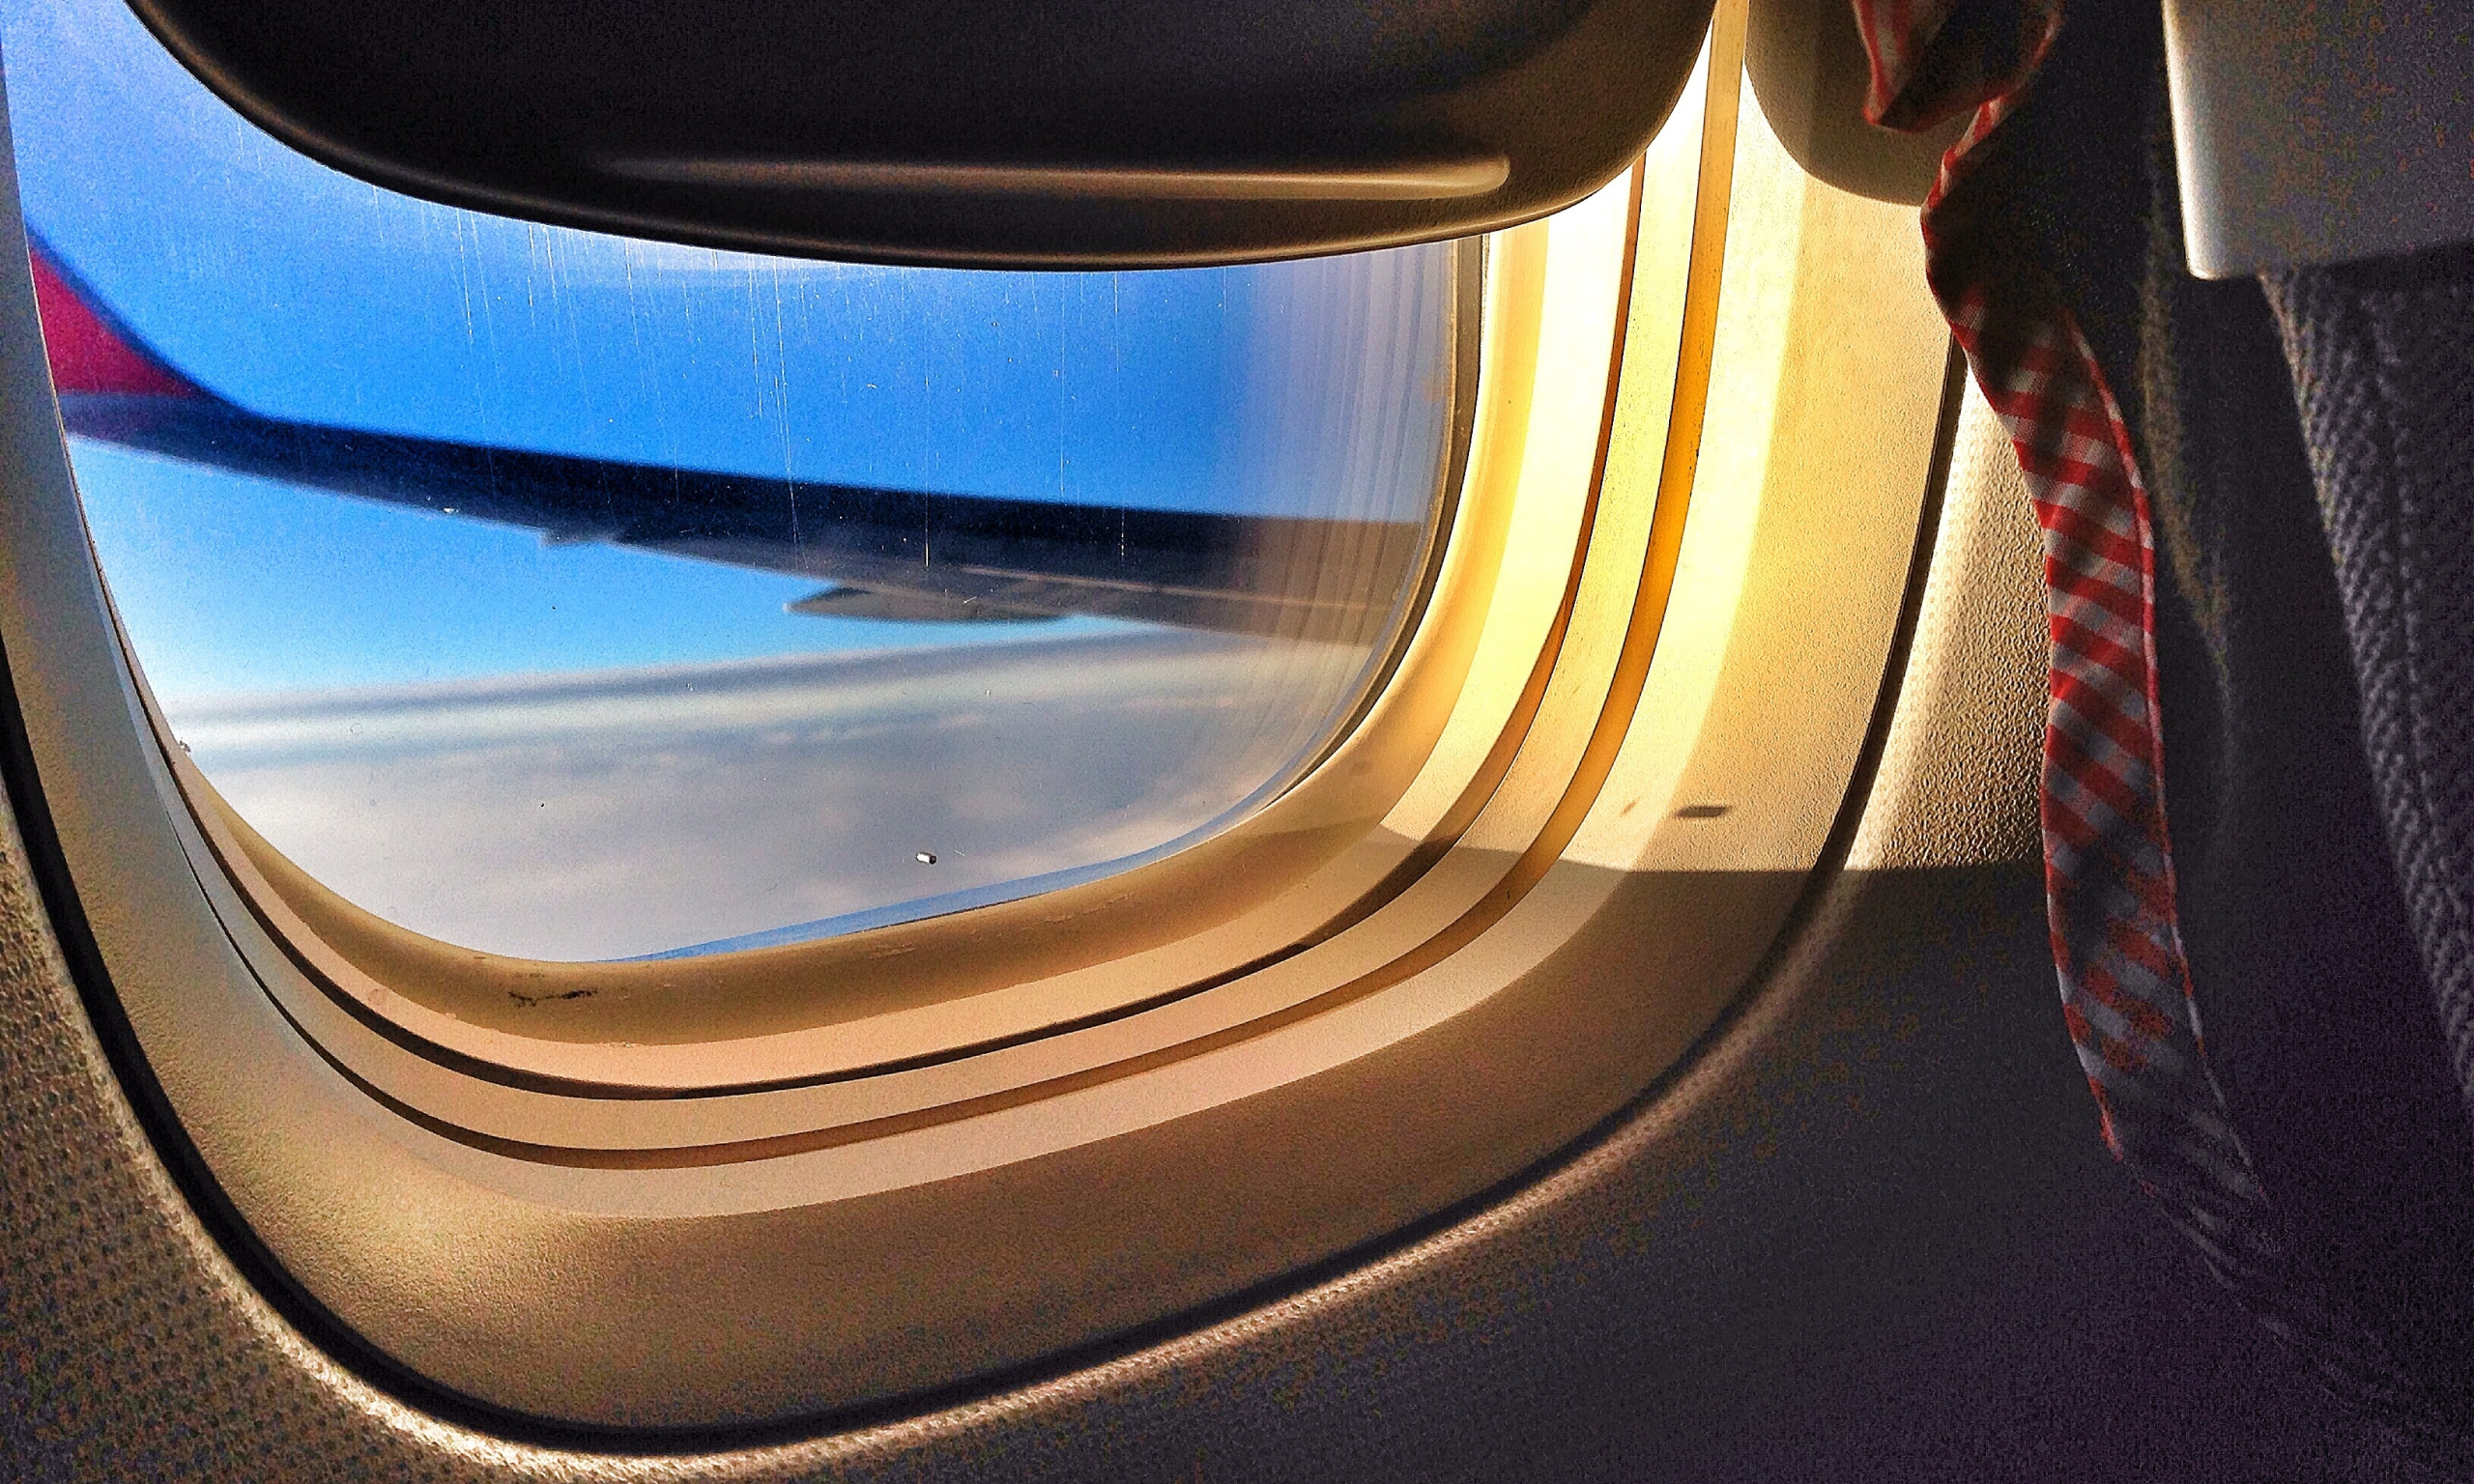 You're always in charge of your view when sitting on a window seat.